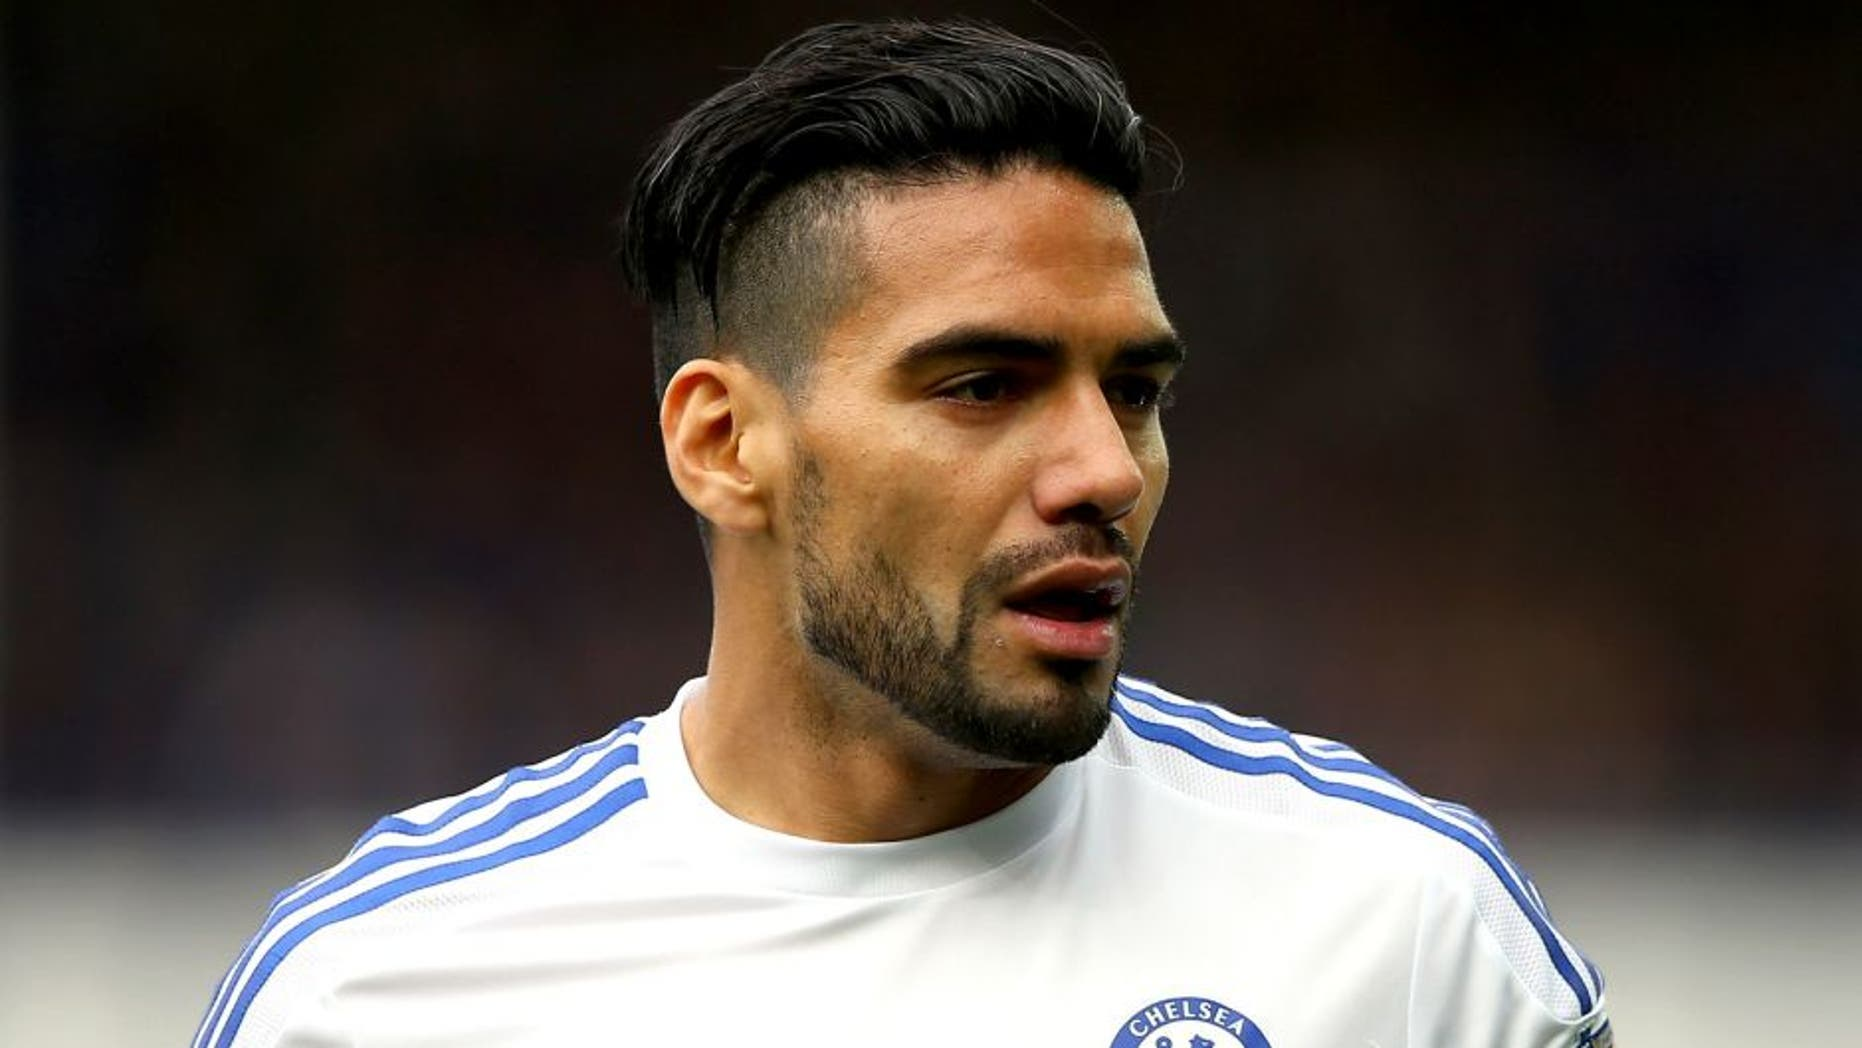 LIVERPOOL, ENGLAND - SEPTEMBER 12: Radamel Falcao of Chelsea looks on during the Barclays Premier League match between Everton and Chelsea at Goodison Park on September 12, 2015 in Liverpool, United Kingdom. (Photo by Alex Livesey/Getty Images)